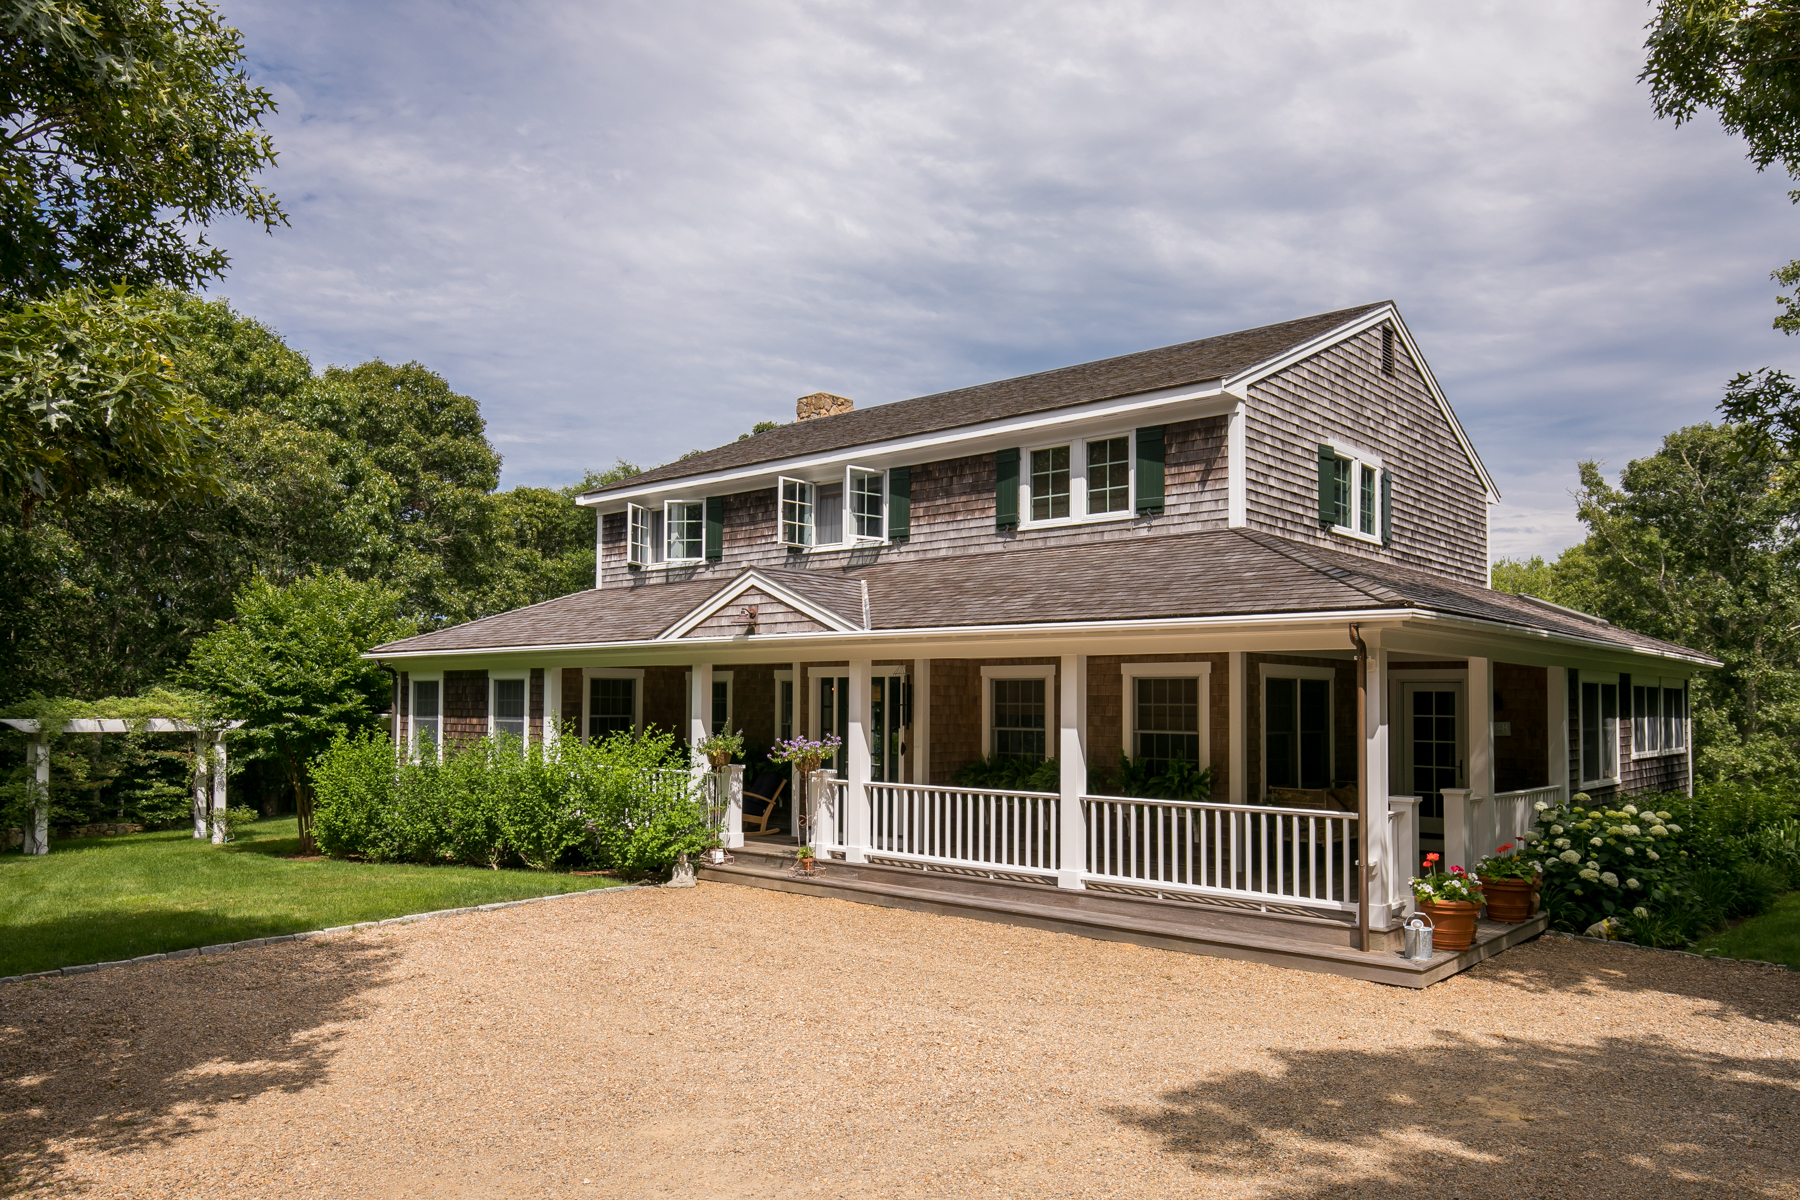 House for Sale at Comtemporary Farmhouse in Chilmark 15 Valley Lane Chilmark, Massachusetts 02535 United States